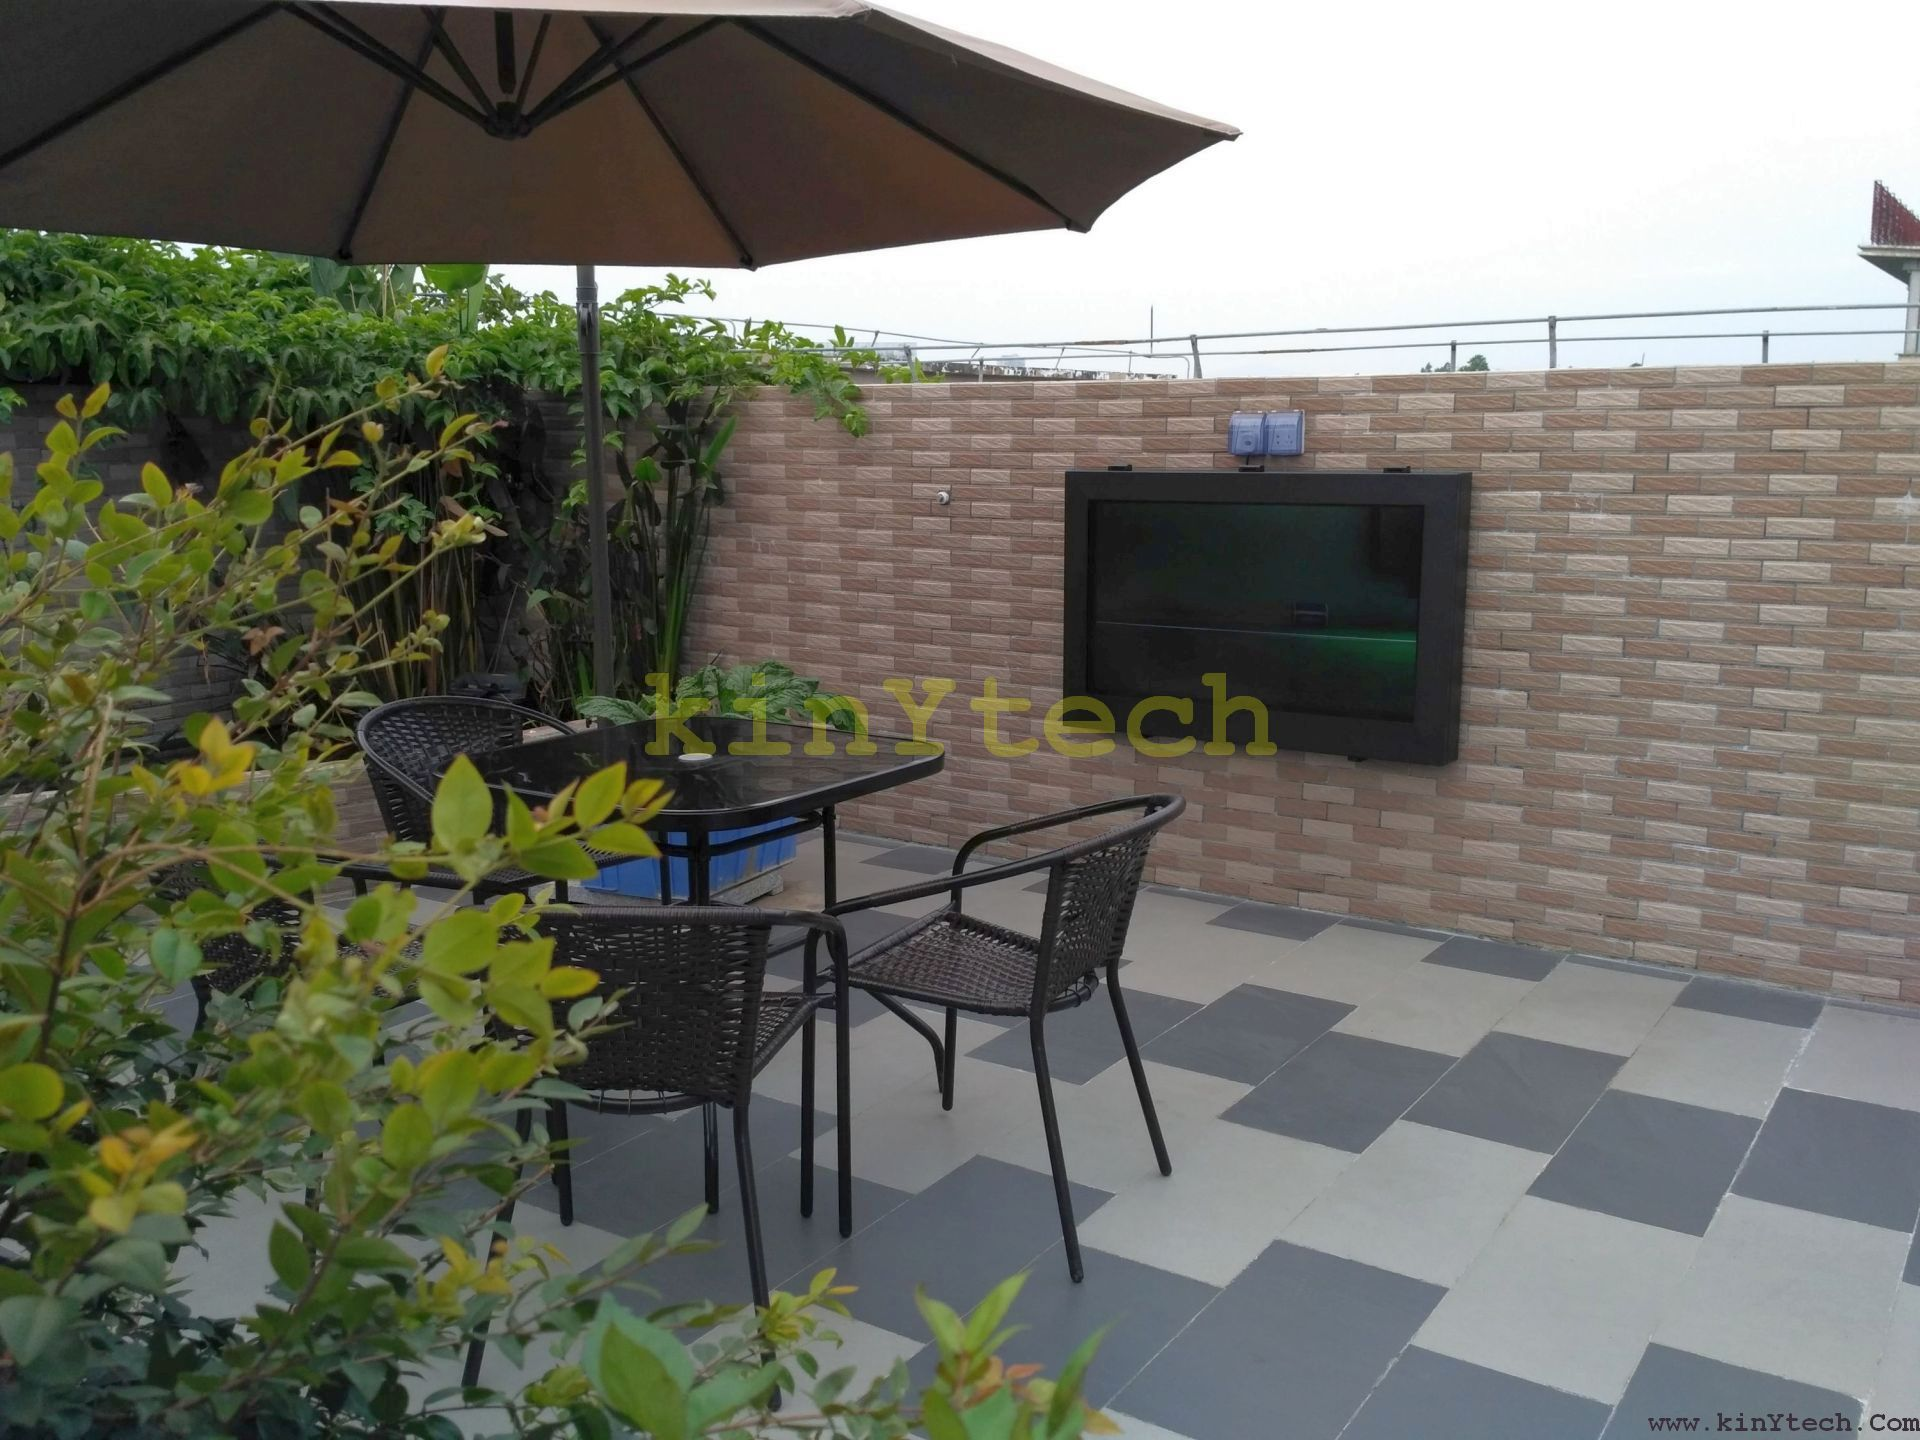 weatherproof TV enclosure From Kinytech China